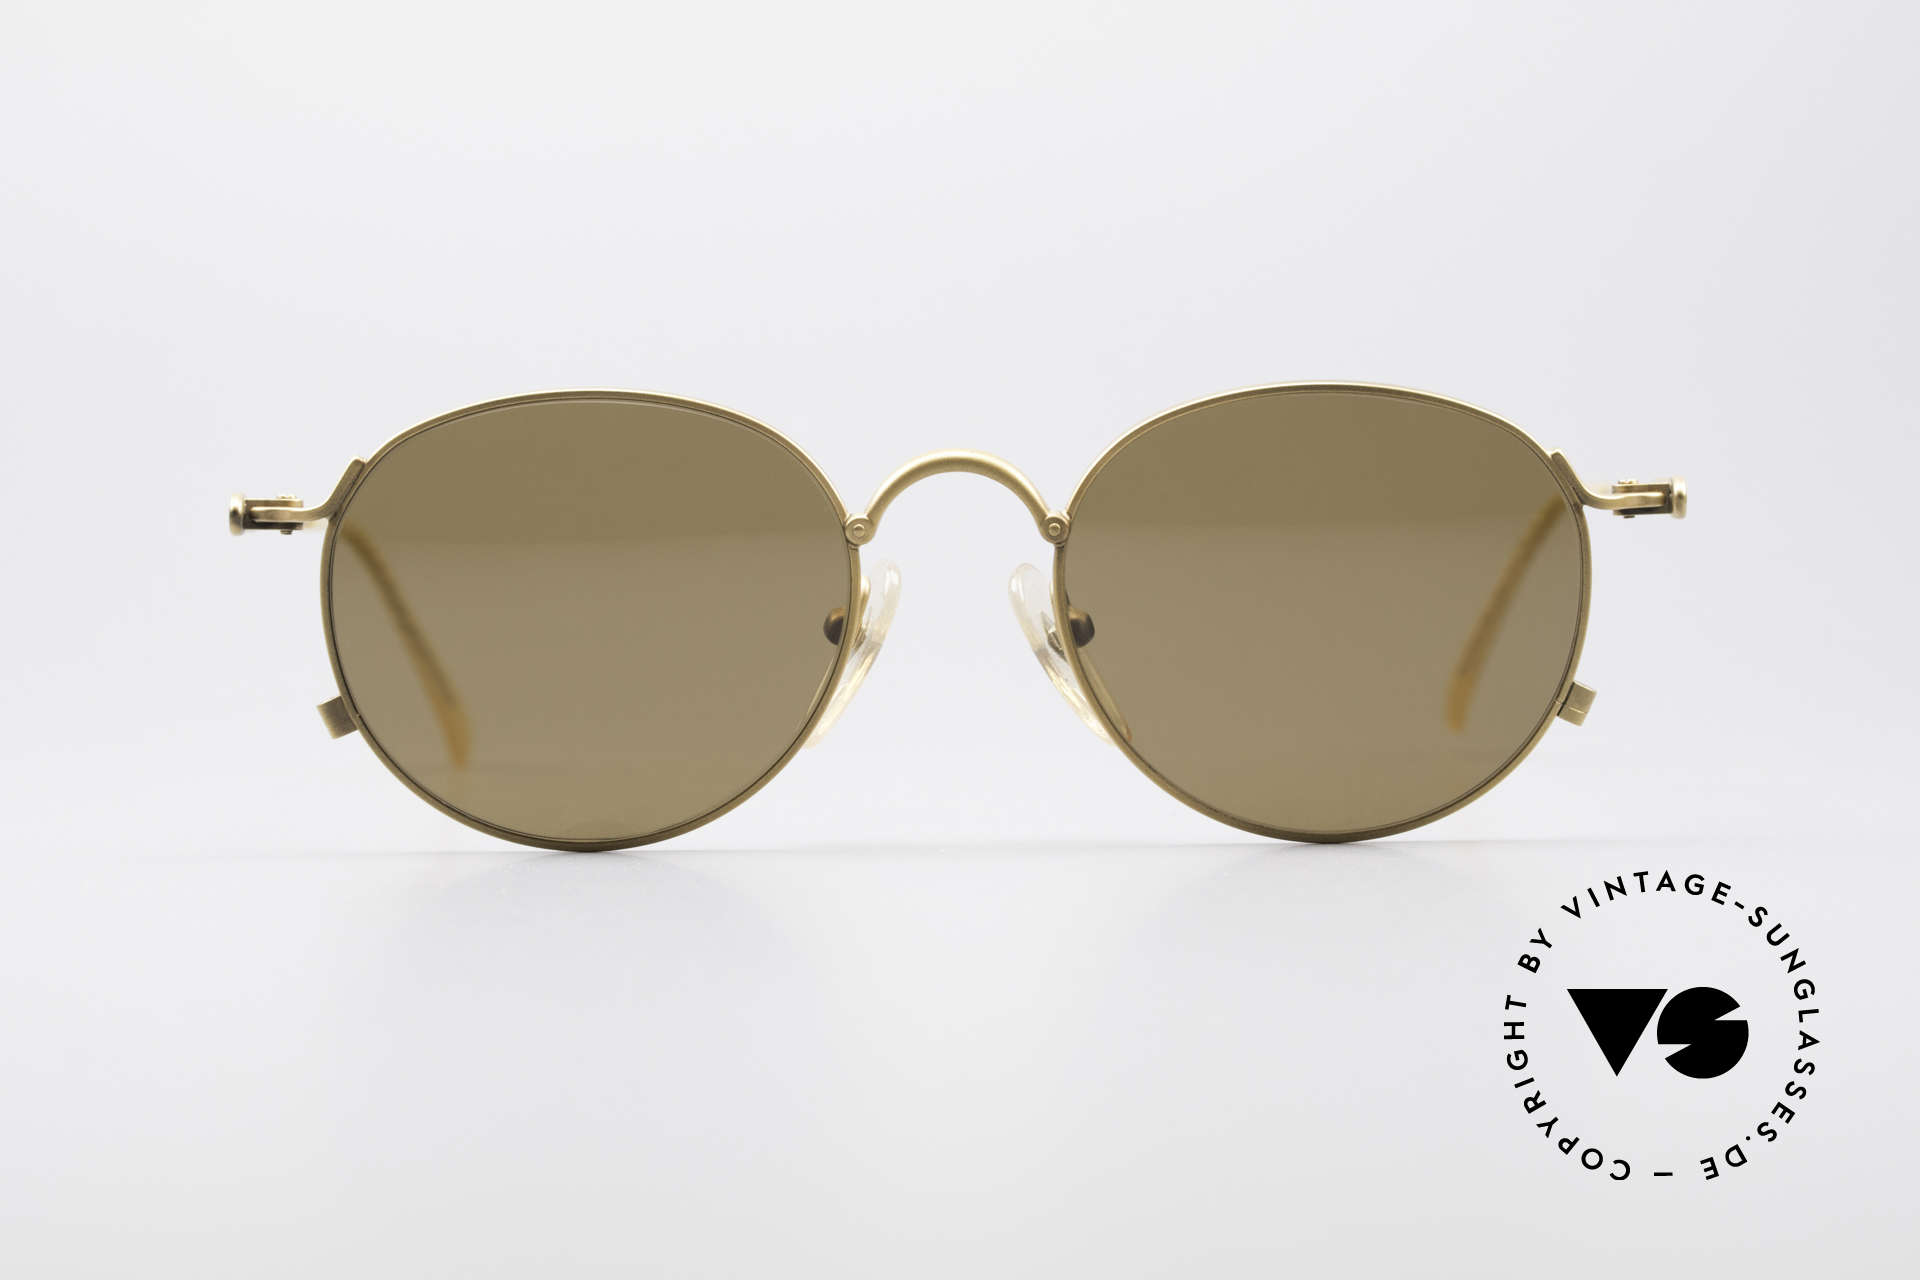 Jean Paul Gaultier 55-2172 Vintage Round JPG Sunglasses, ornamentally twisted temples (like a hawser), Made for Men and Women